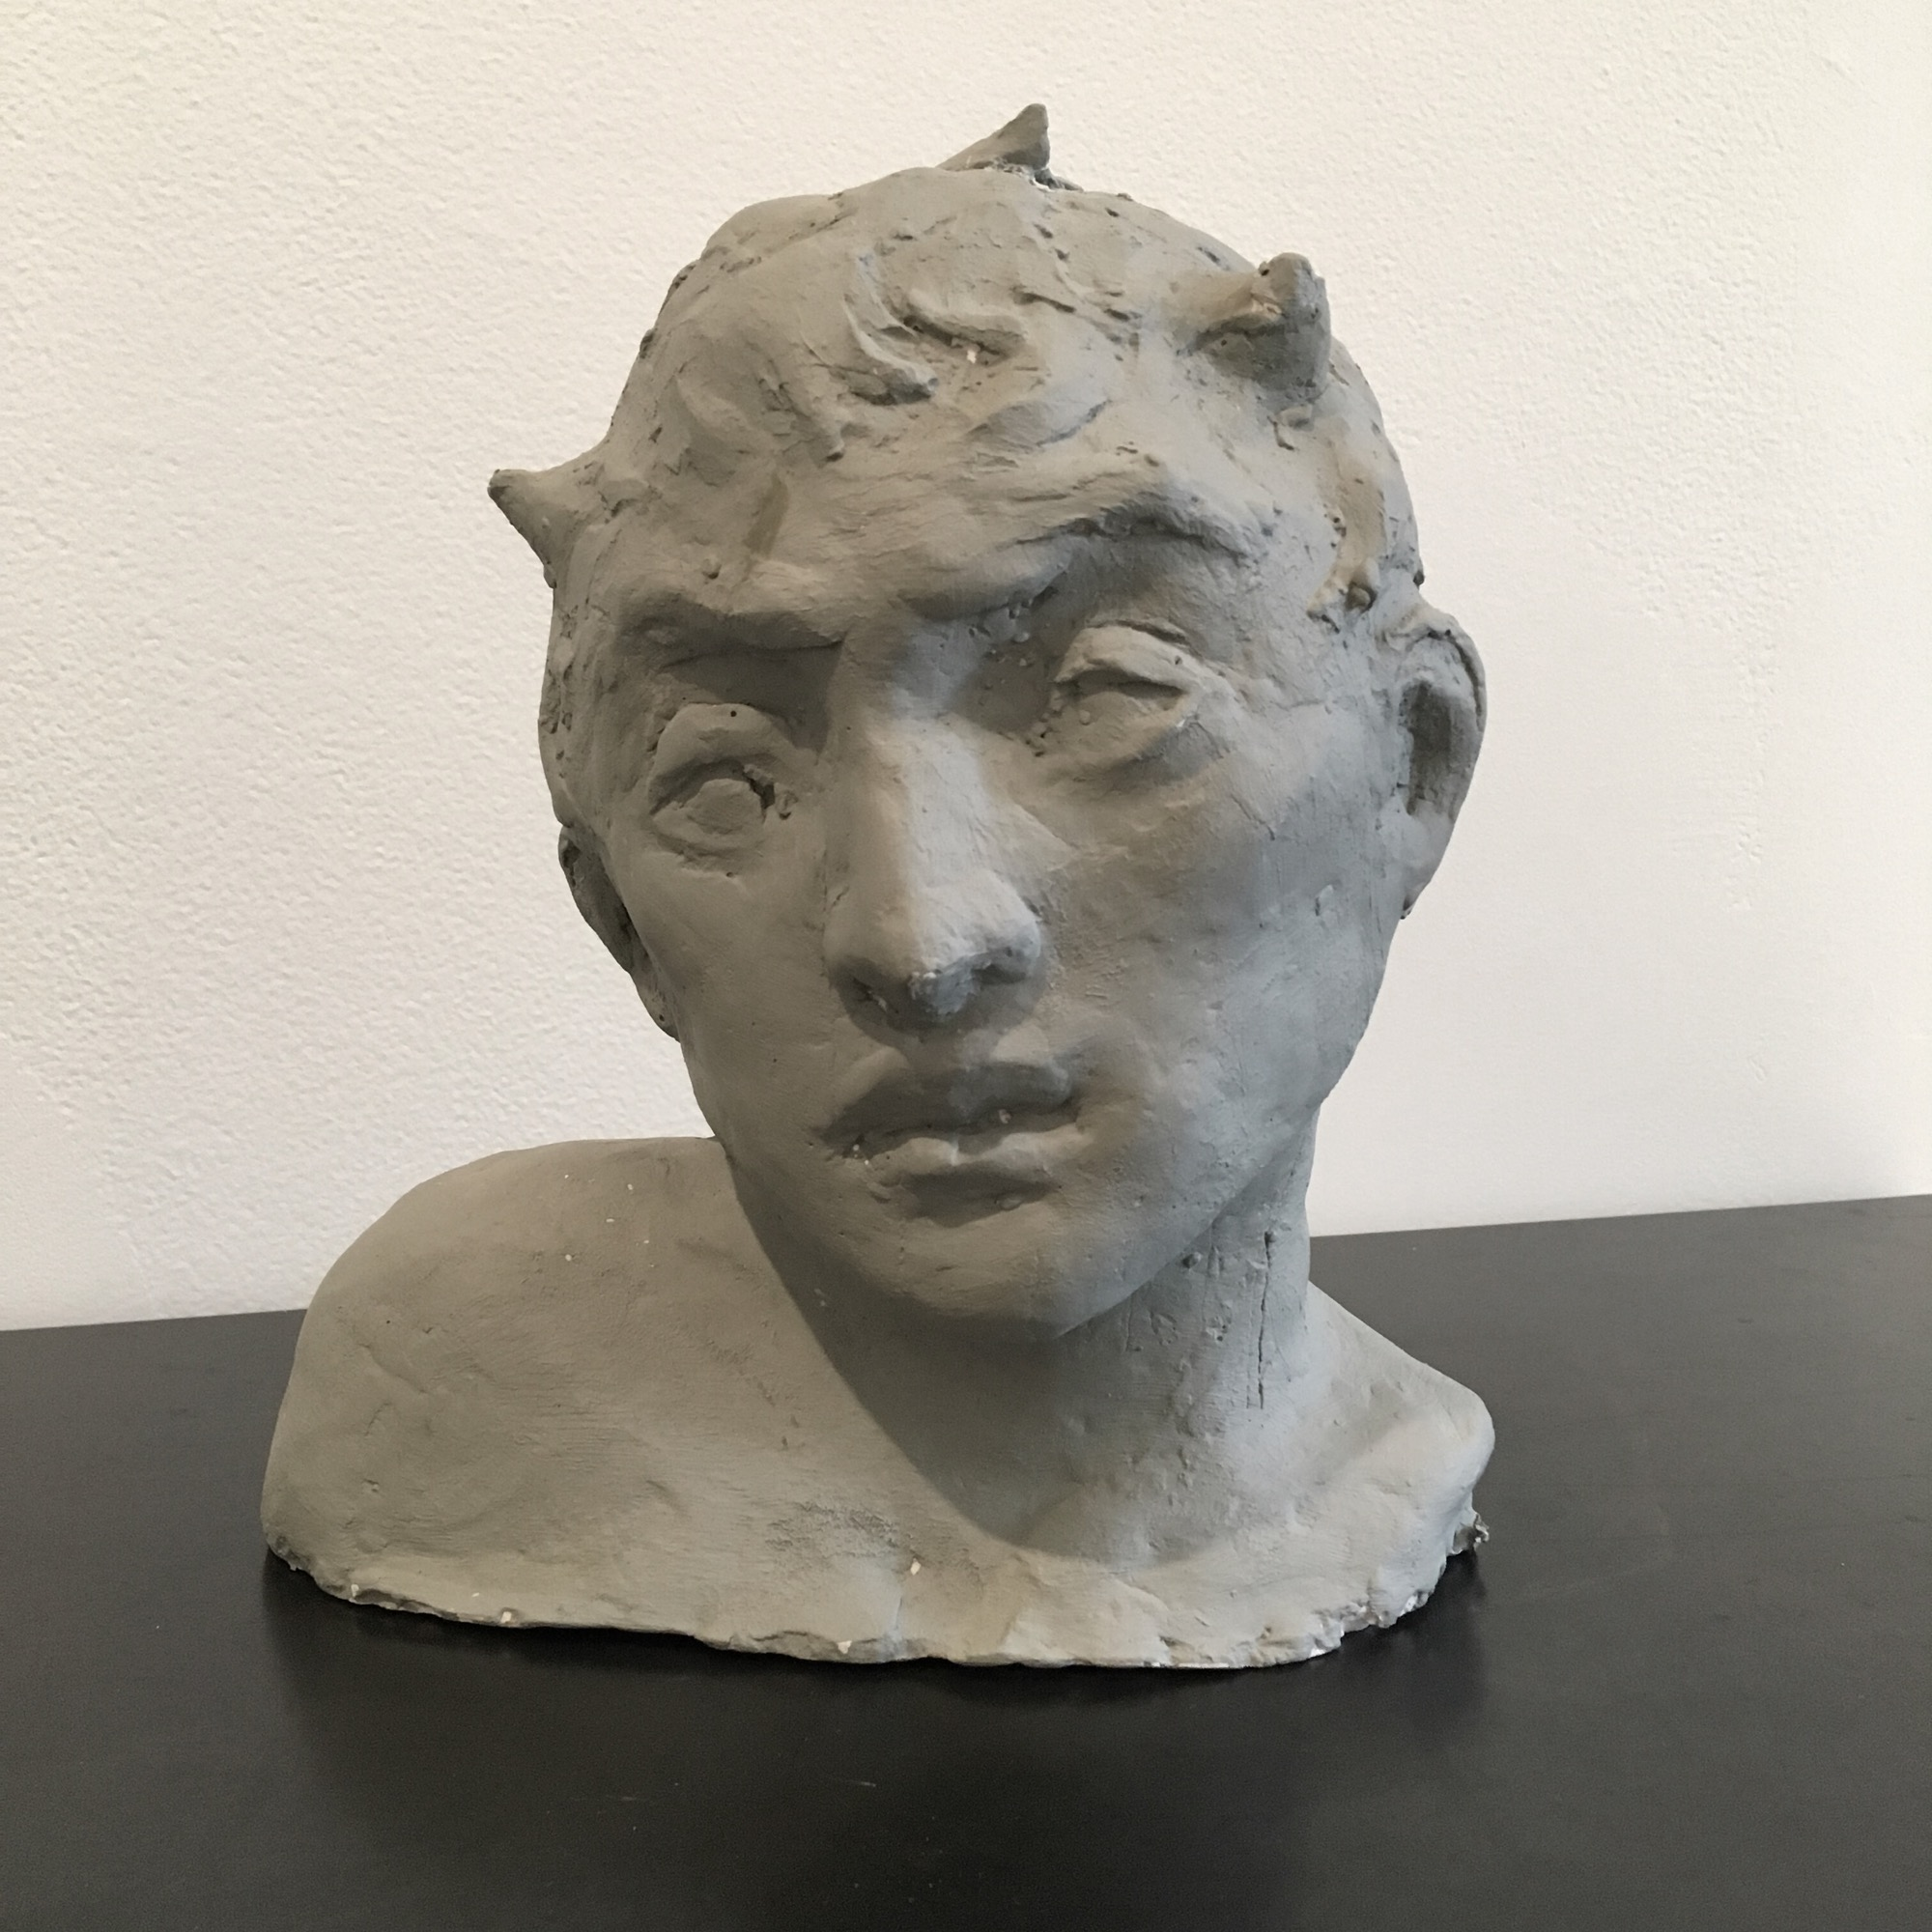 Raymond Han    Untitled , 2015-2017  Plaster cast  8 1/2 x 8 x 5 3/4 inches  21.6 x 20.3 x 14.6 cm  Limited edition plaster casts available through the Estate of Raymond Han